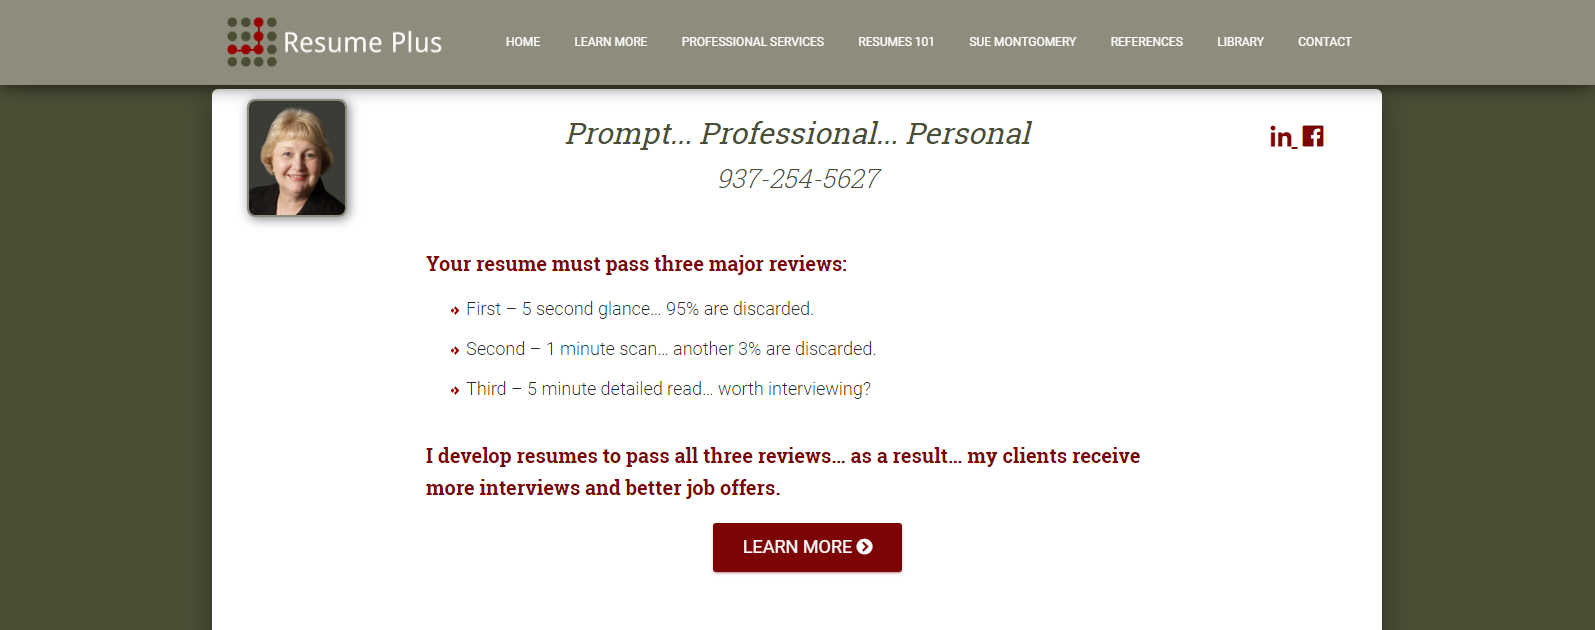 Resume writer assuring job seekers that they will get interviews after hiring top resume writing services